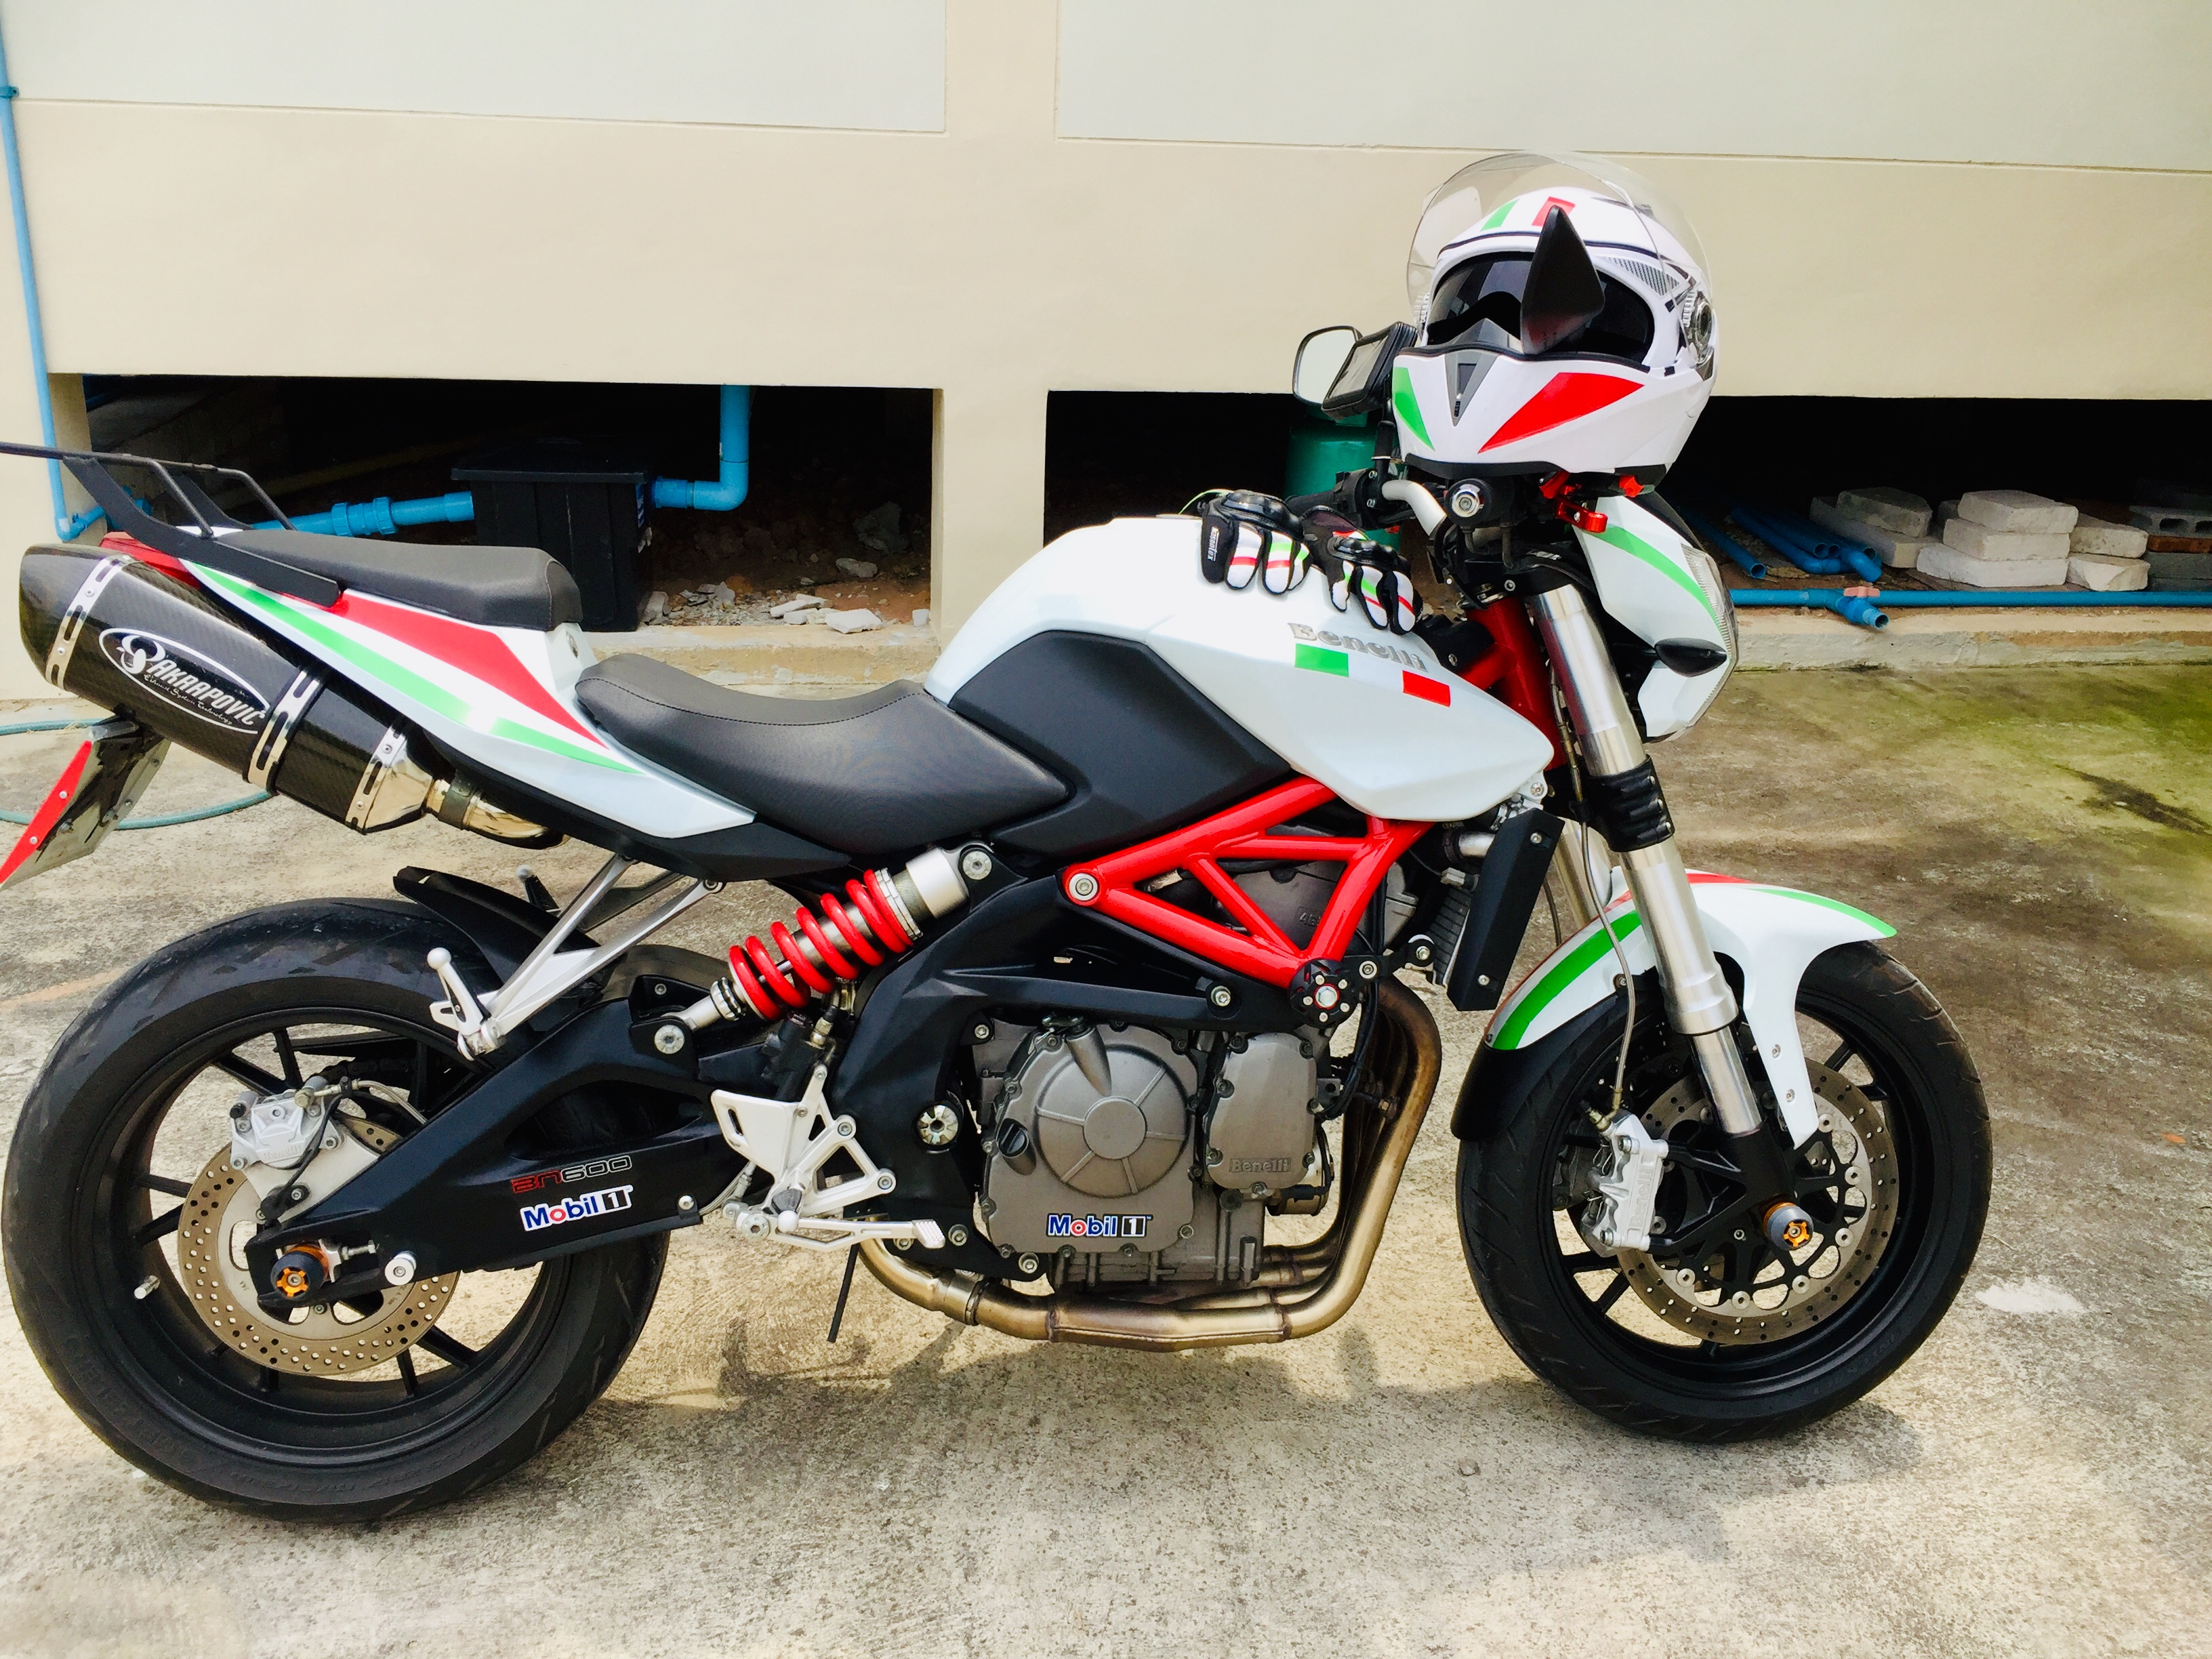 Wanted to buy a Honda CB650 but bought a Benelli bn600J instead.-df586c8b-3da7-4d61-9796-54d9af7b301e.jpeg